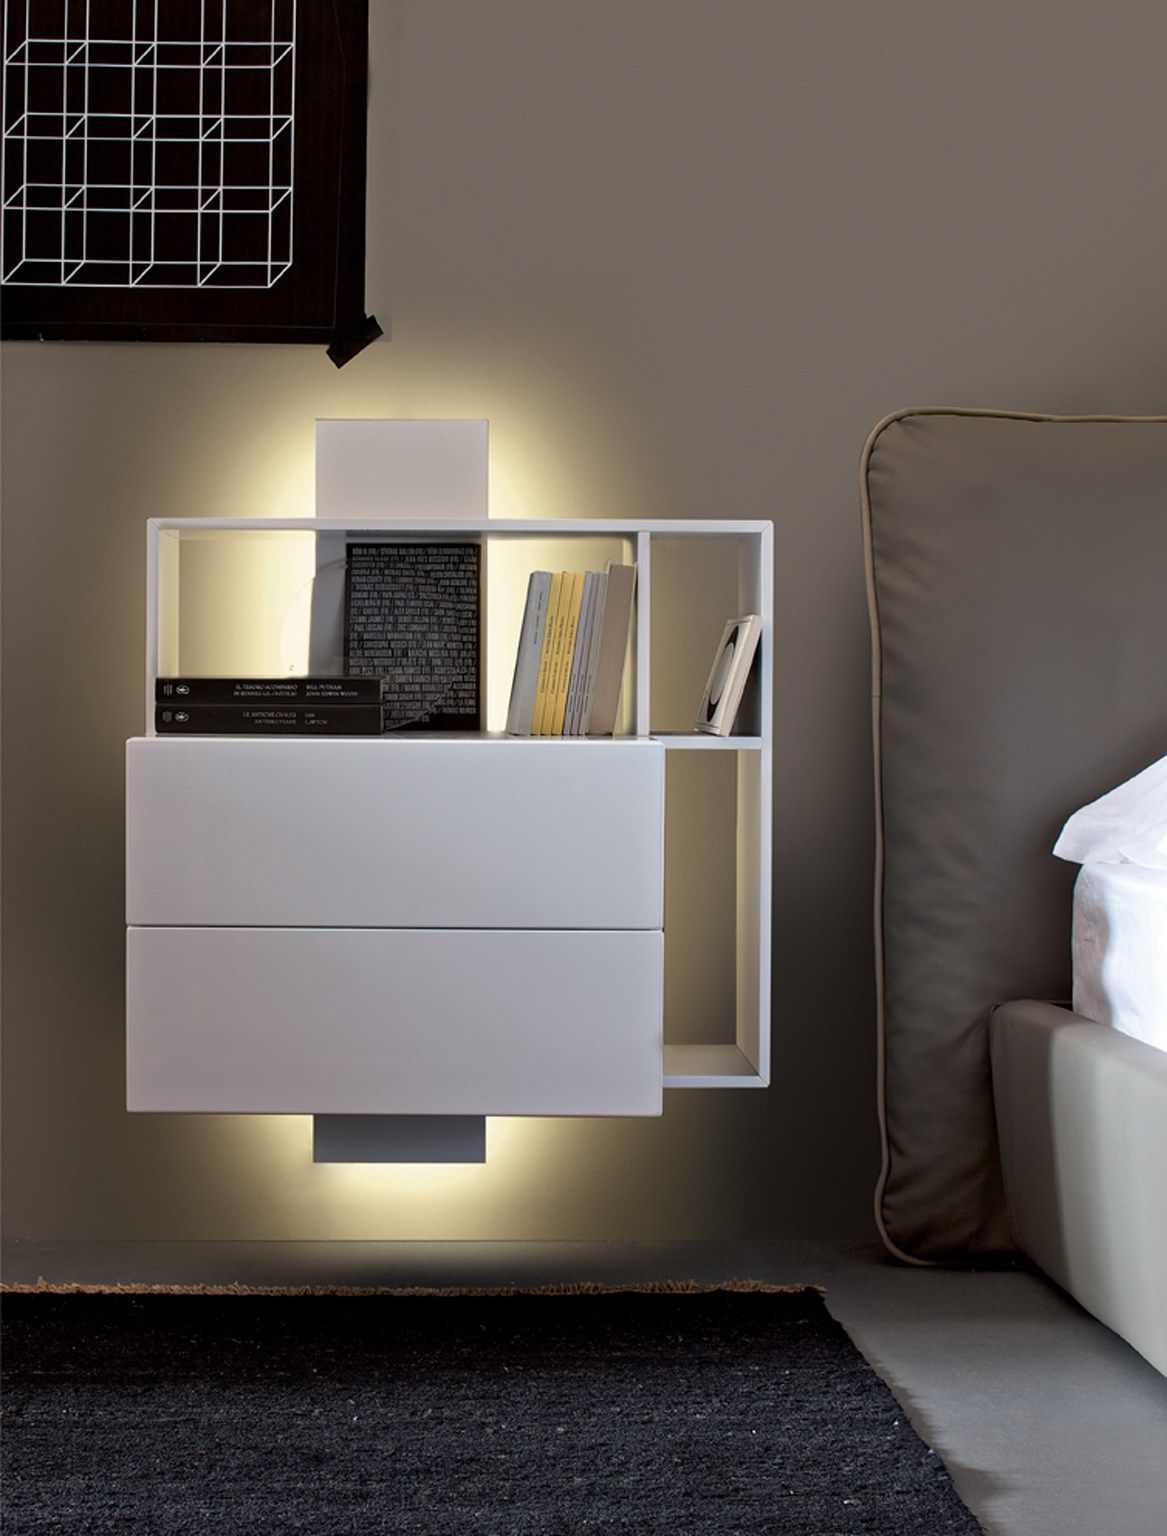 Mounted Bedside Table Wallmounted Bedside Table With Drawers Contatto Estel Casa Line